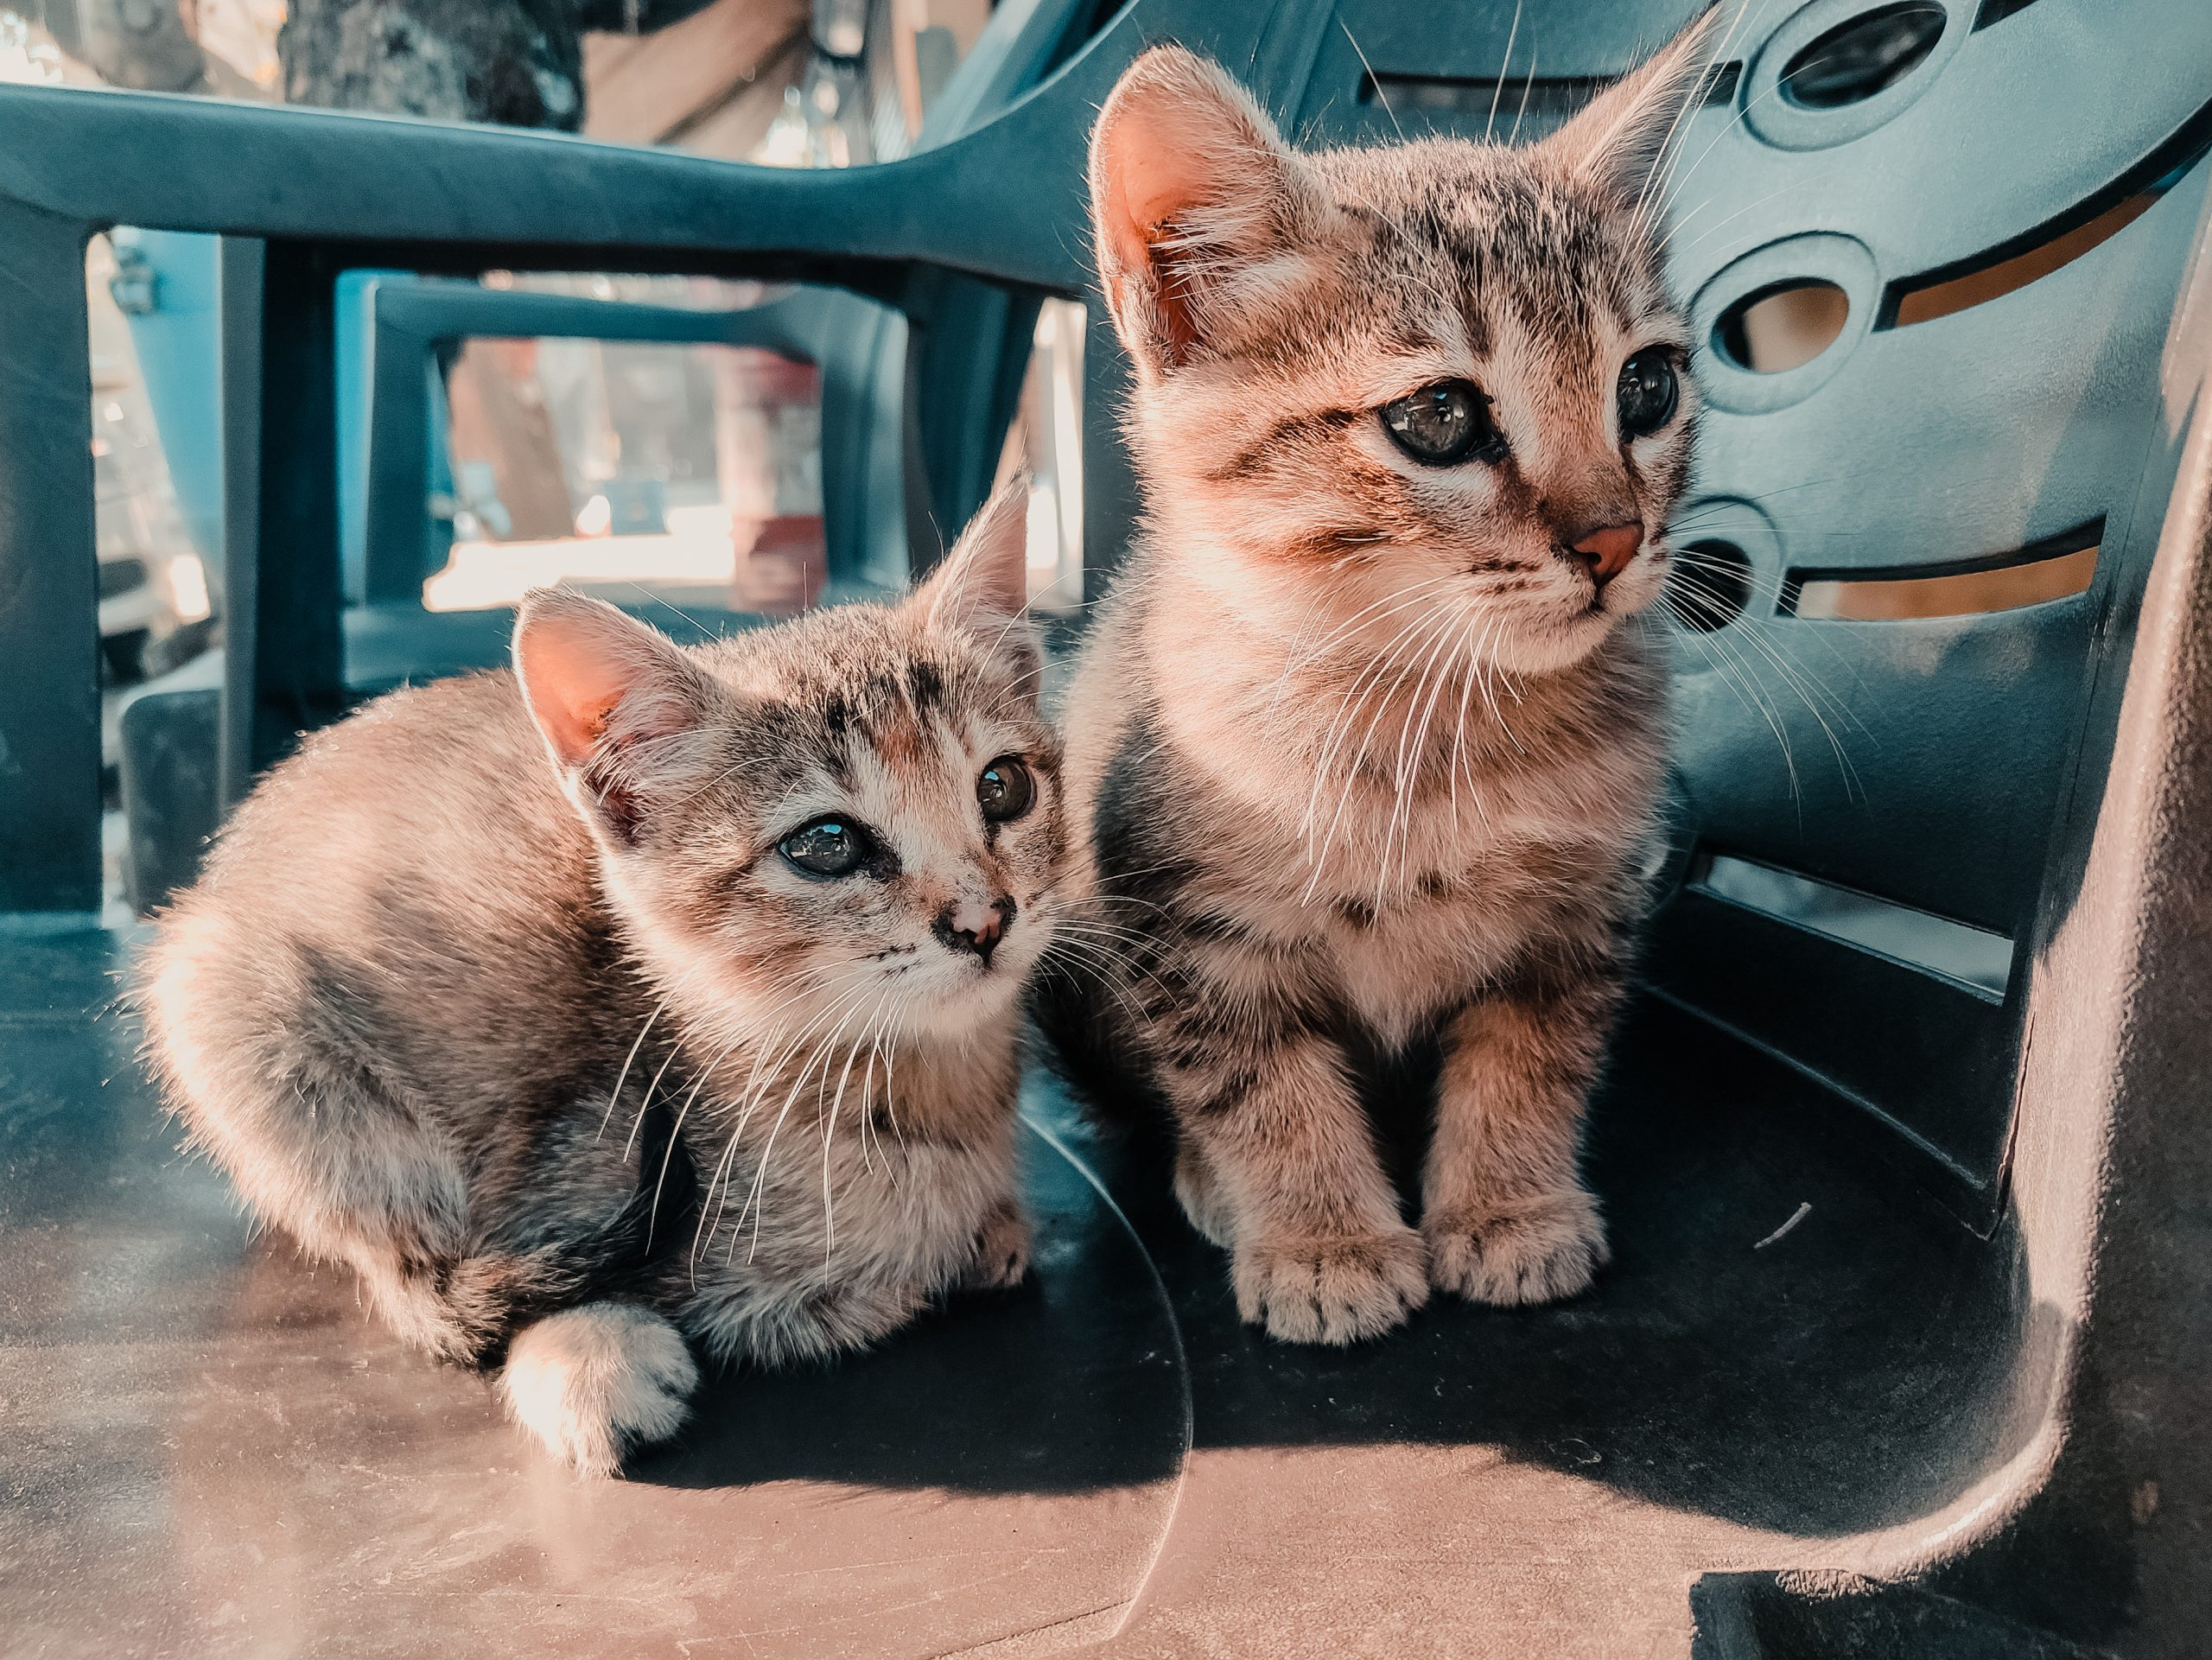 Two kittens sitting on a chair